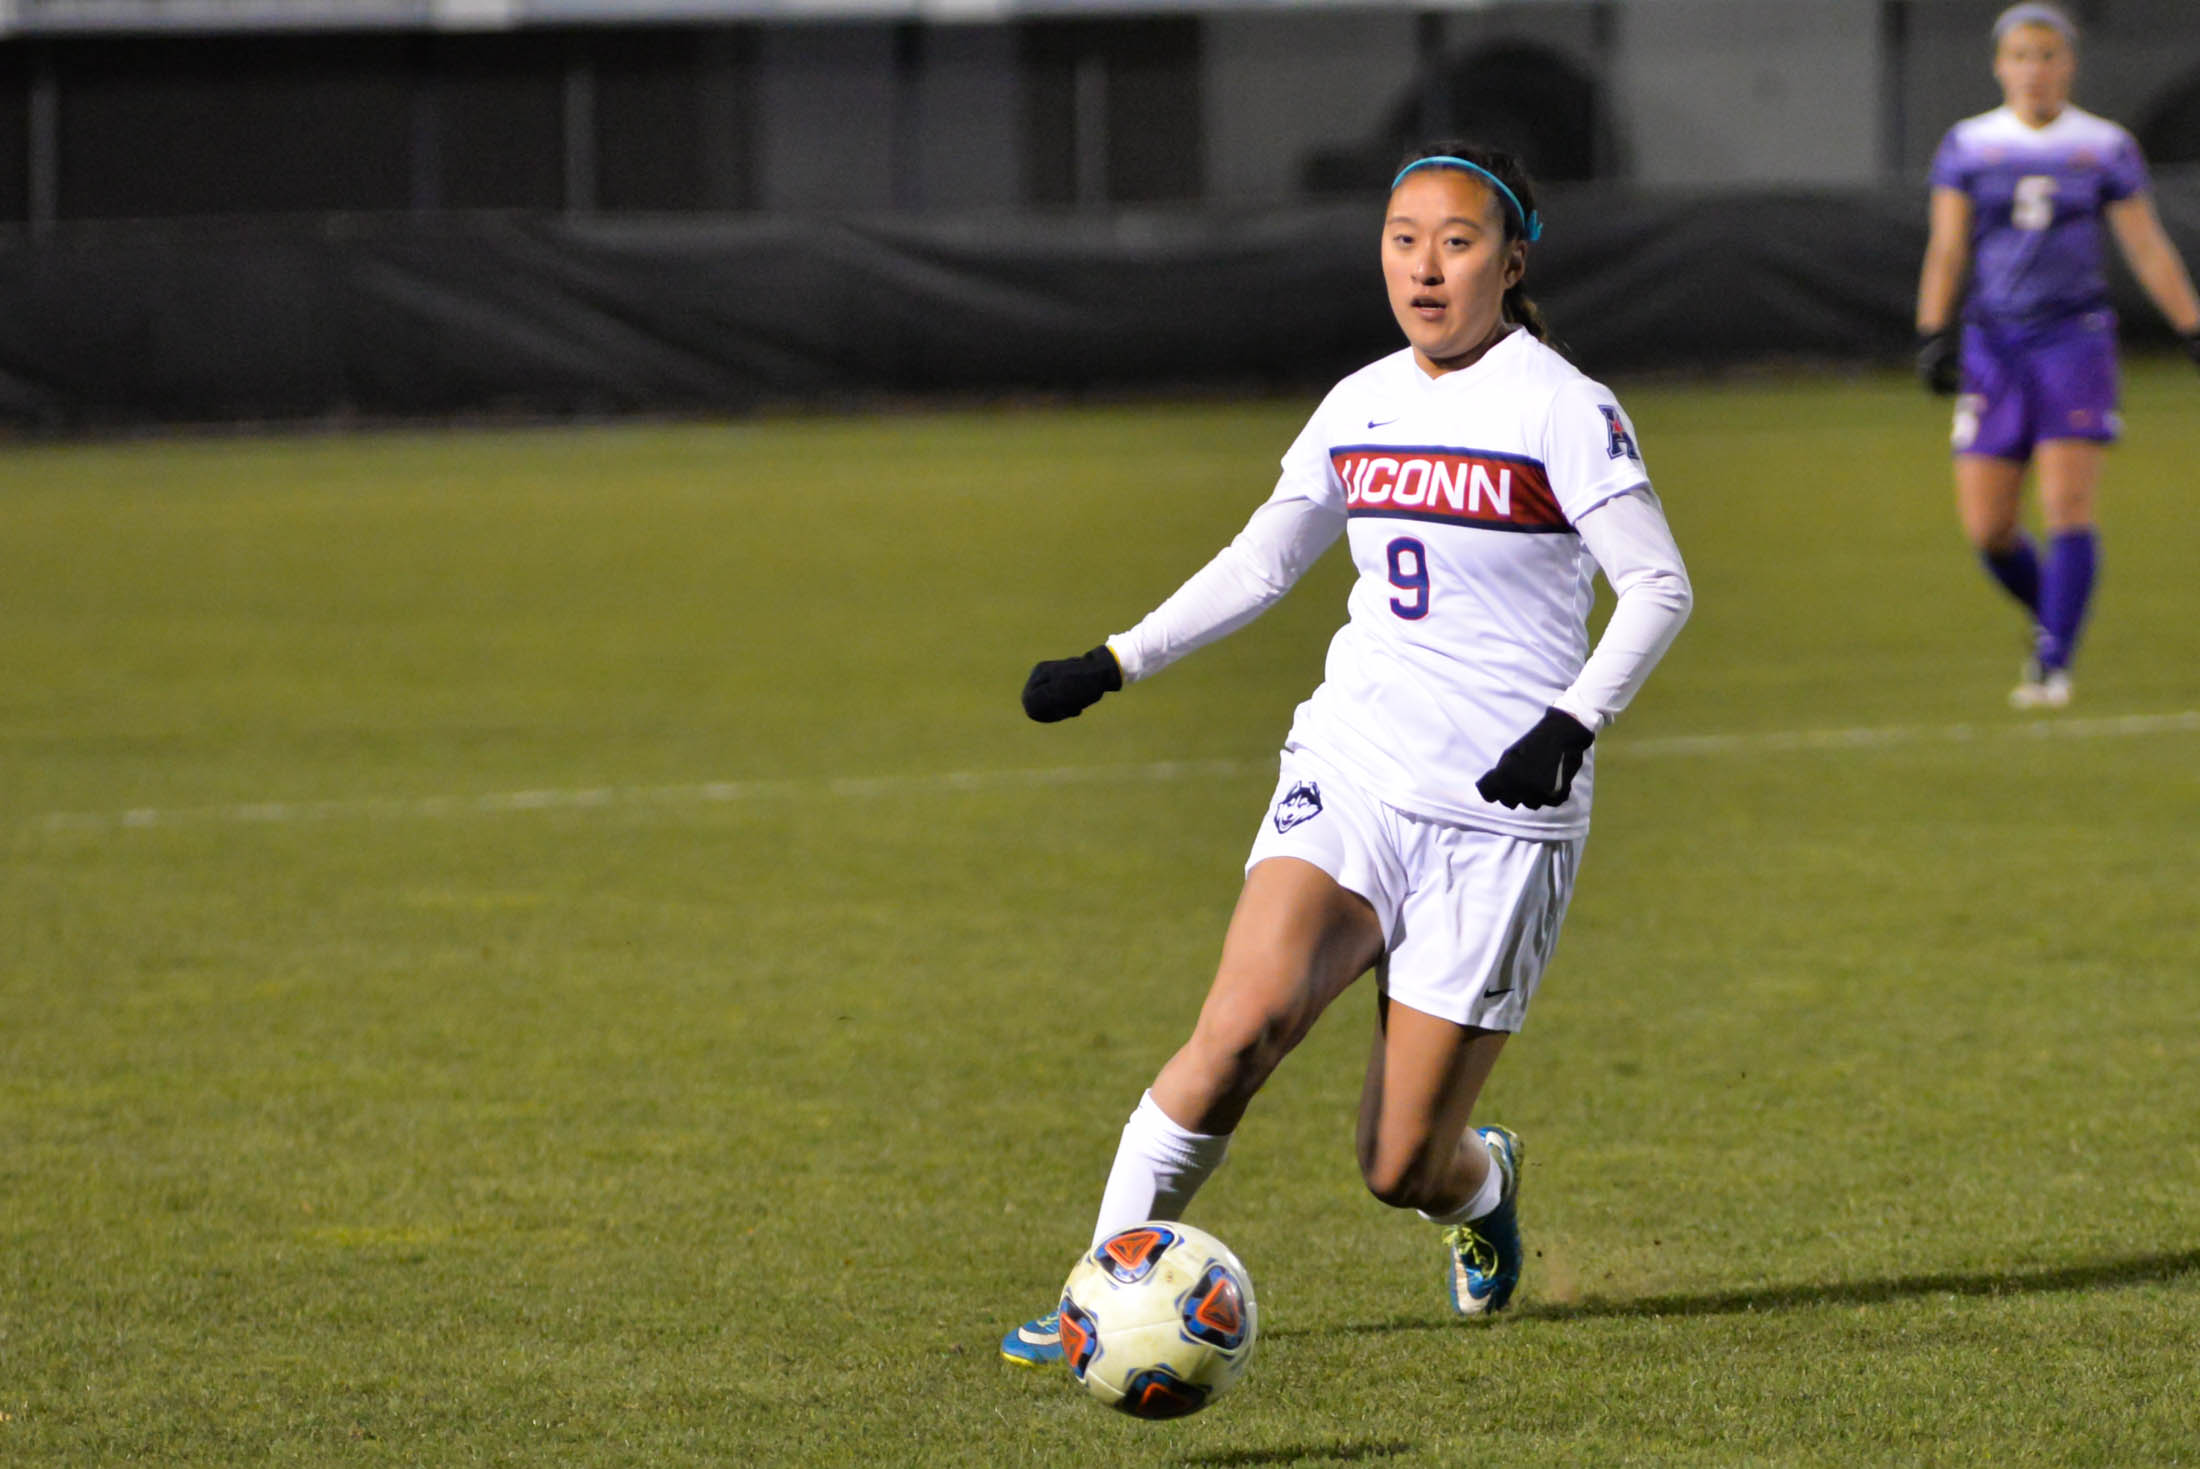 Forward Shay Nakahira (9) moves down the hall during the Huskies 4-2 victory over the UAlbany Great Danes on Saturday evening. (Amar Batra/The Daily Campus)